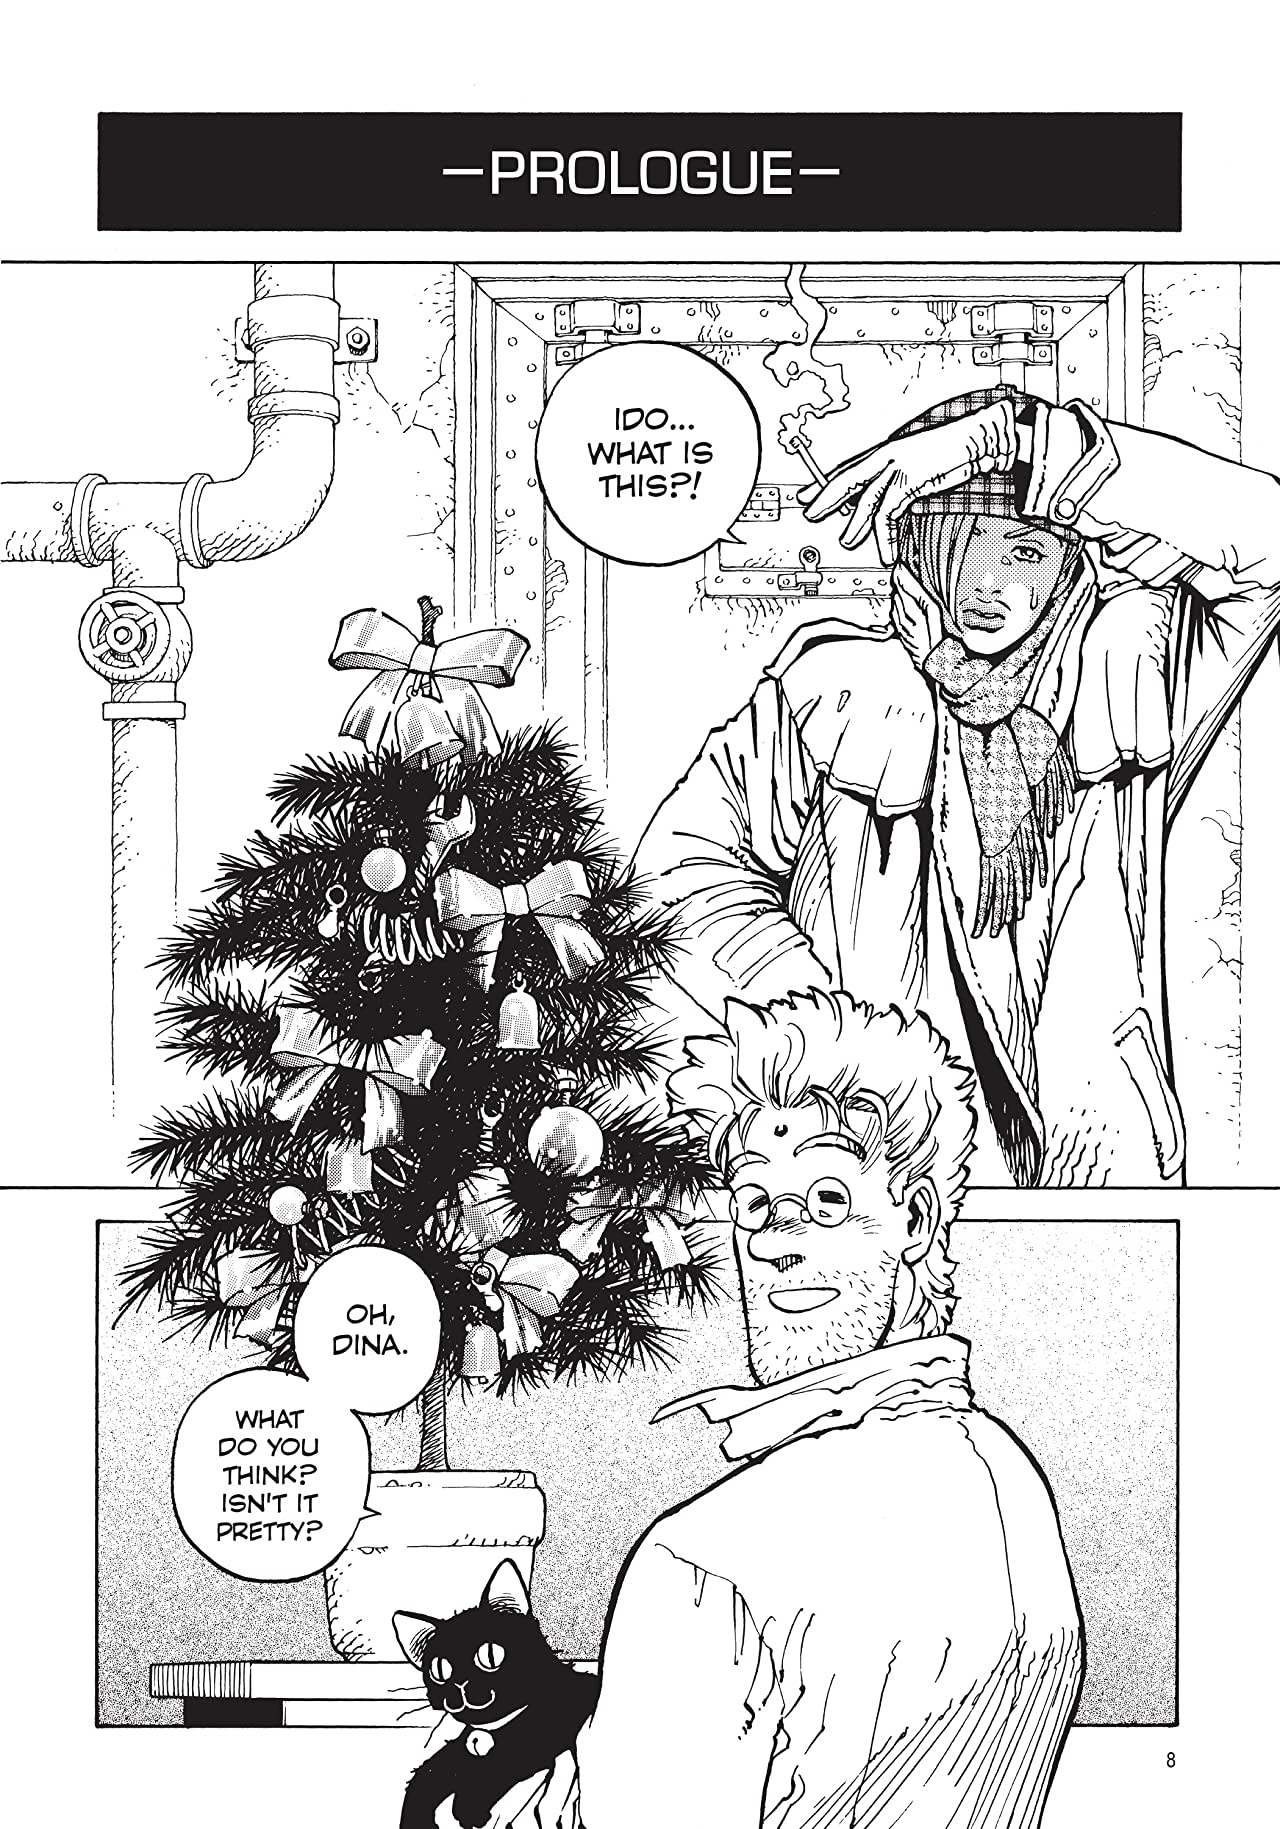 Battle Angel Alita: Holy Night and Other Stories